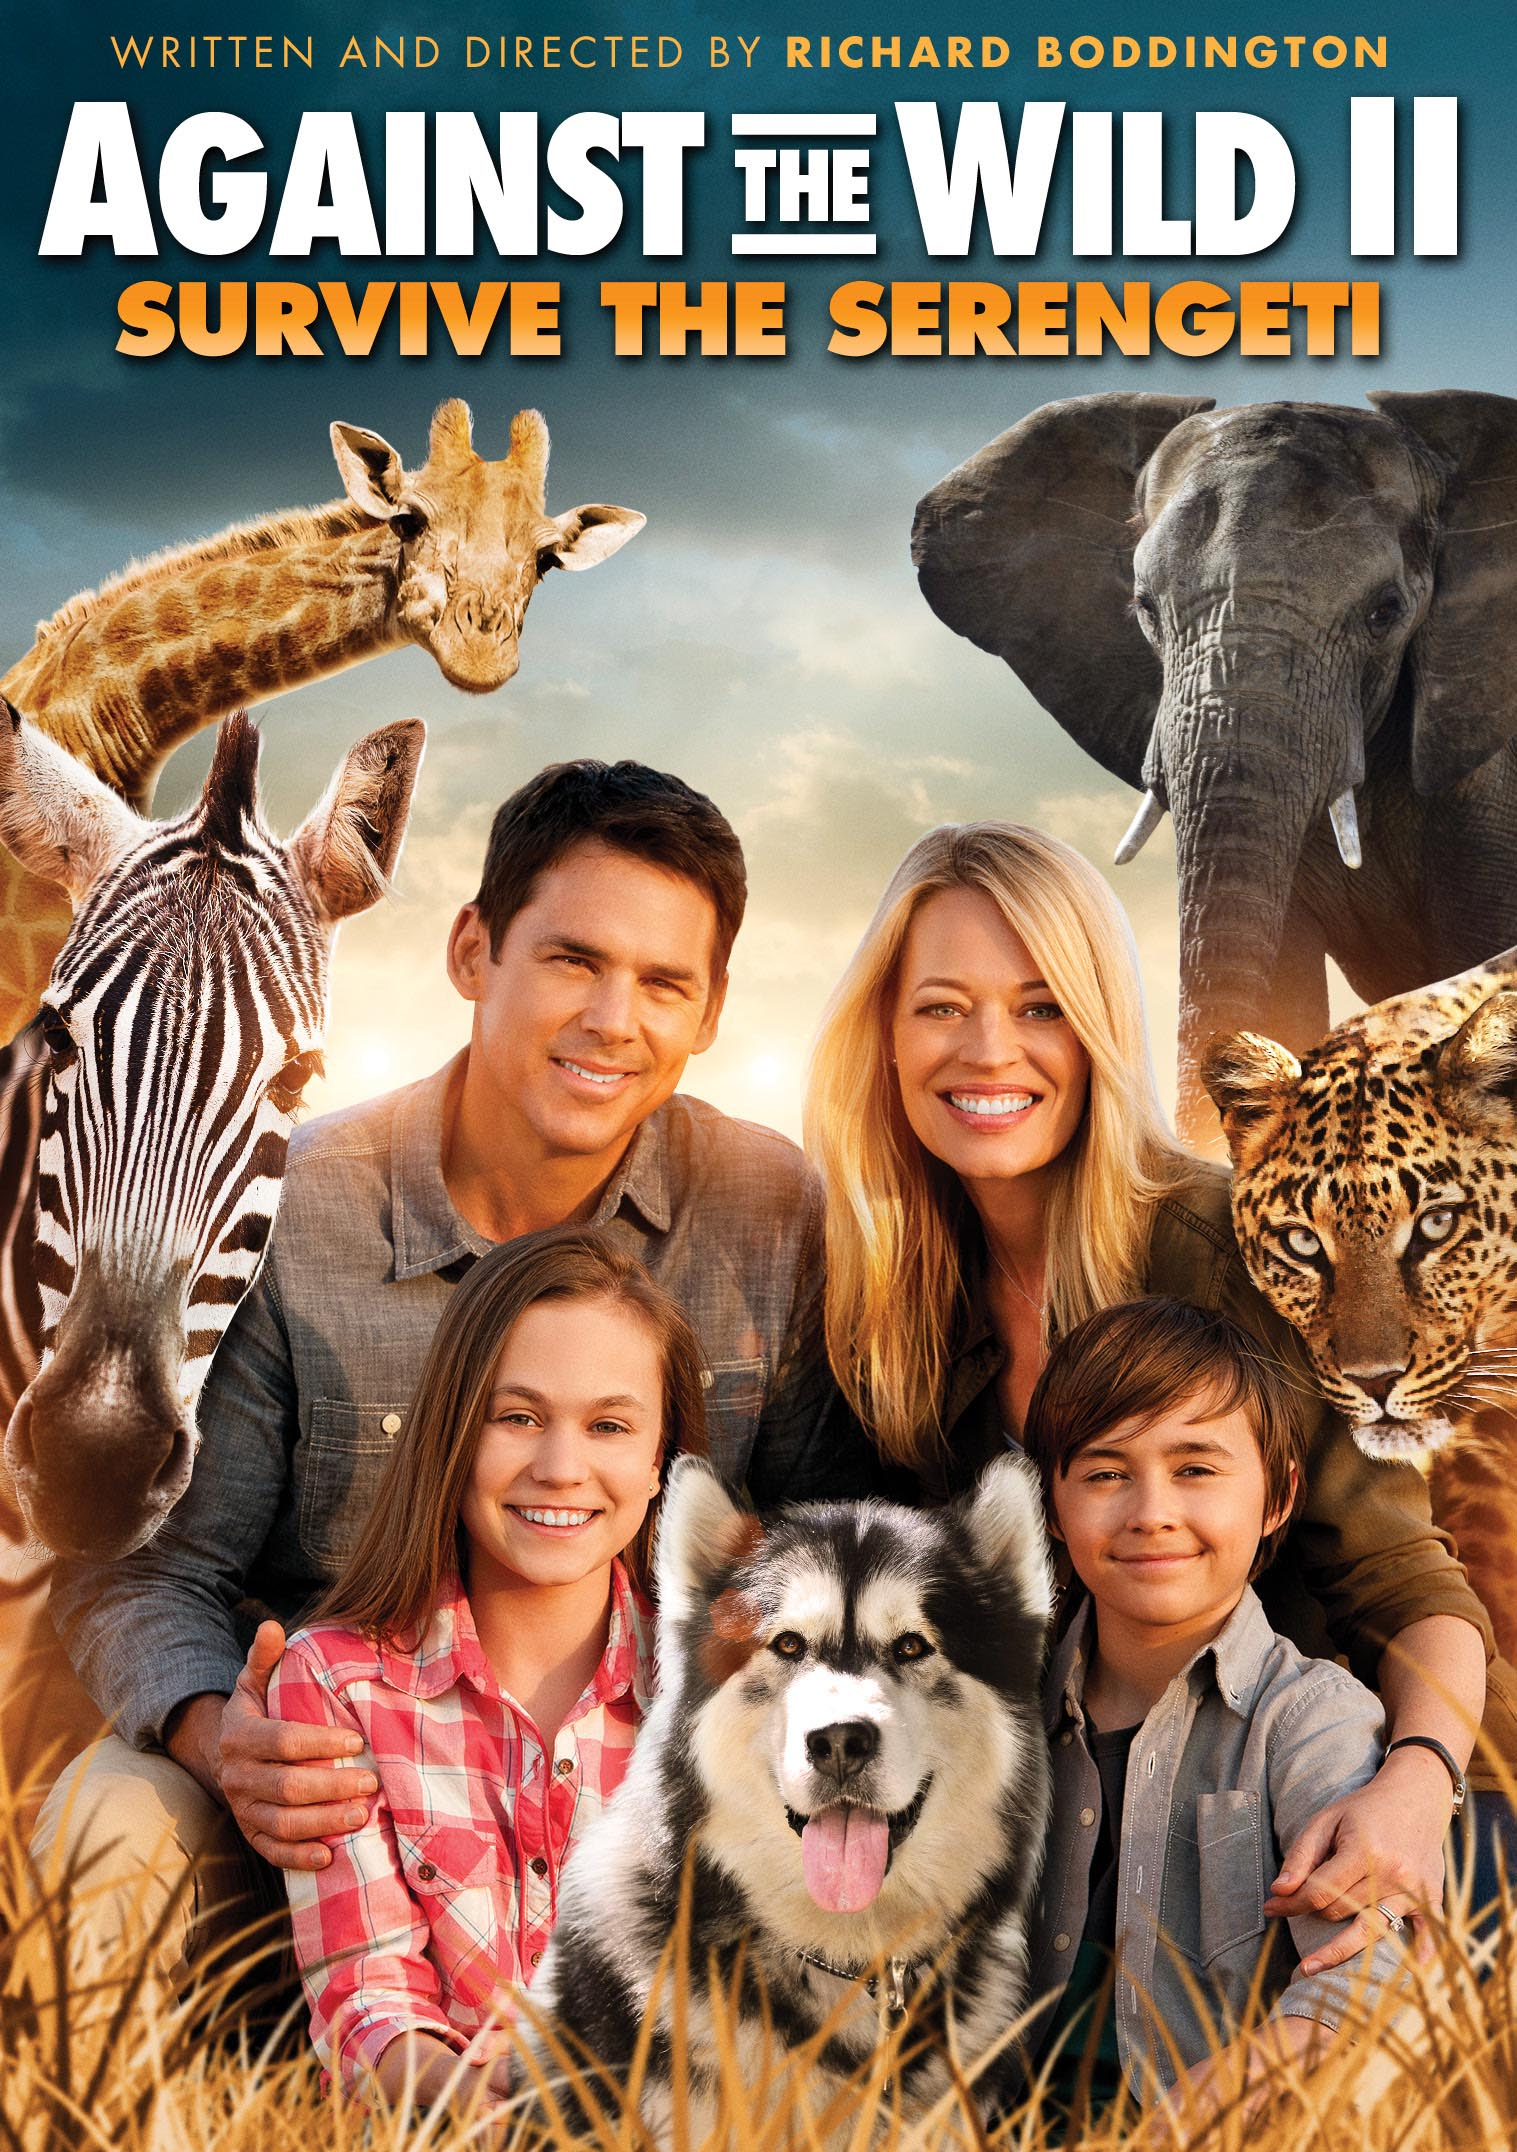 DVD Review & Giveaway: Against the Wild 2 – Survive The Serengeti #ATW2